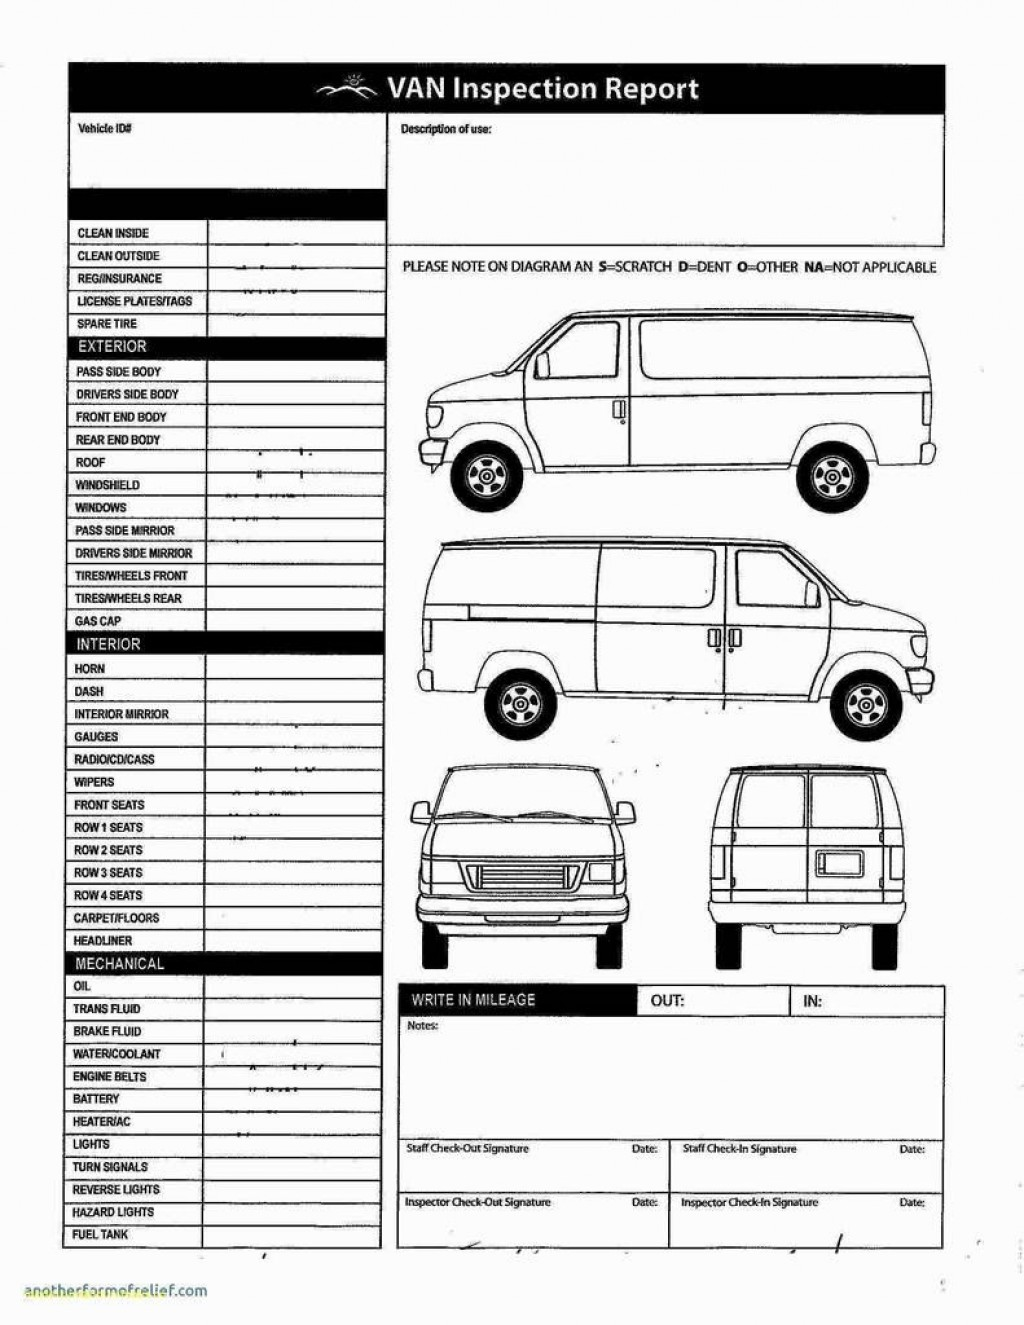 007 Staggering Truck Inspection Form Template Image  Commercial Vehicle Maintenance FreeLarge